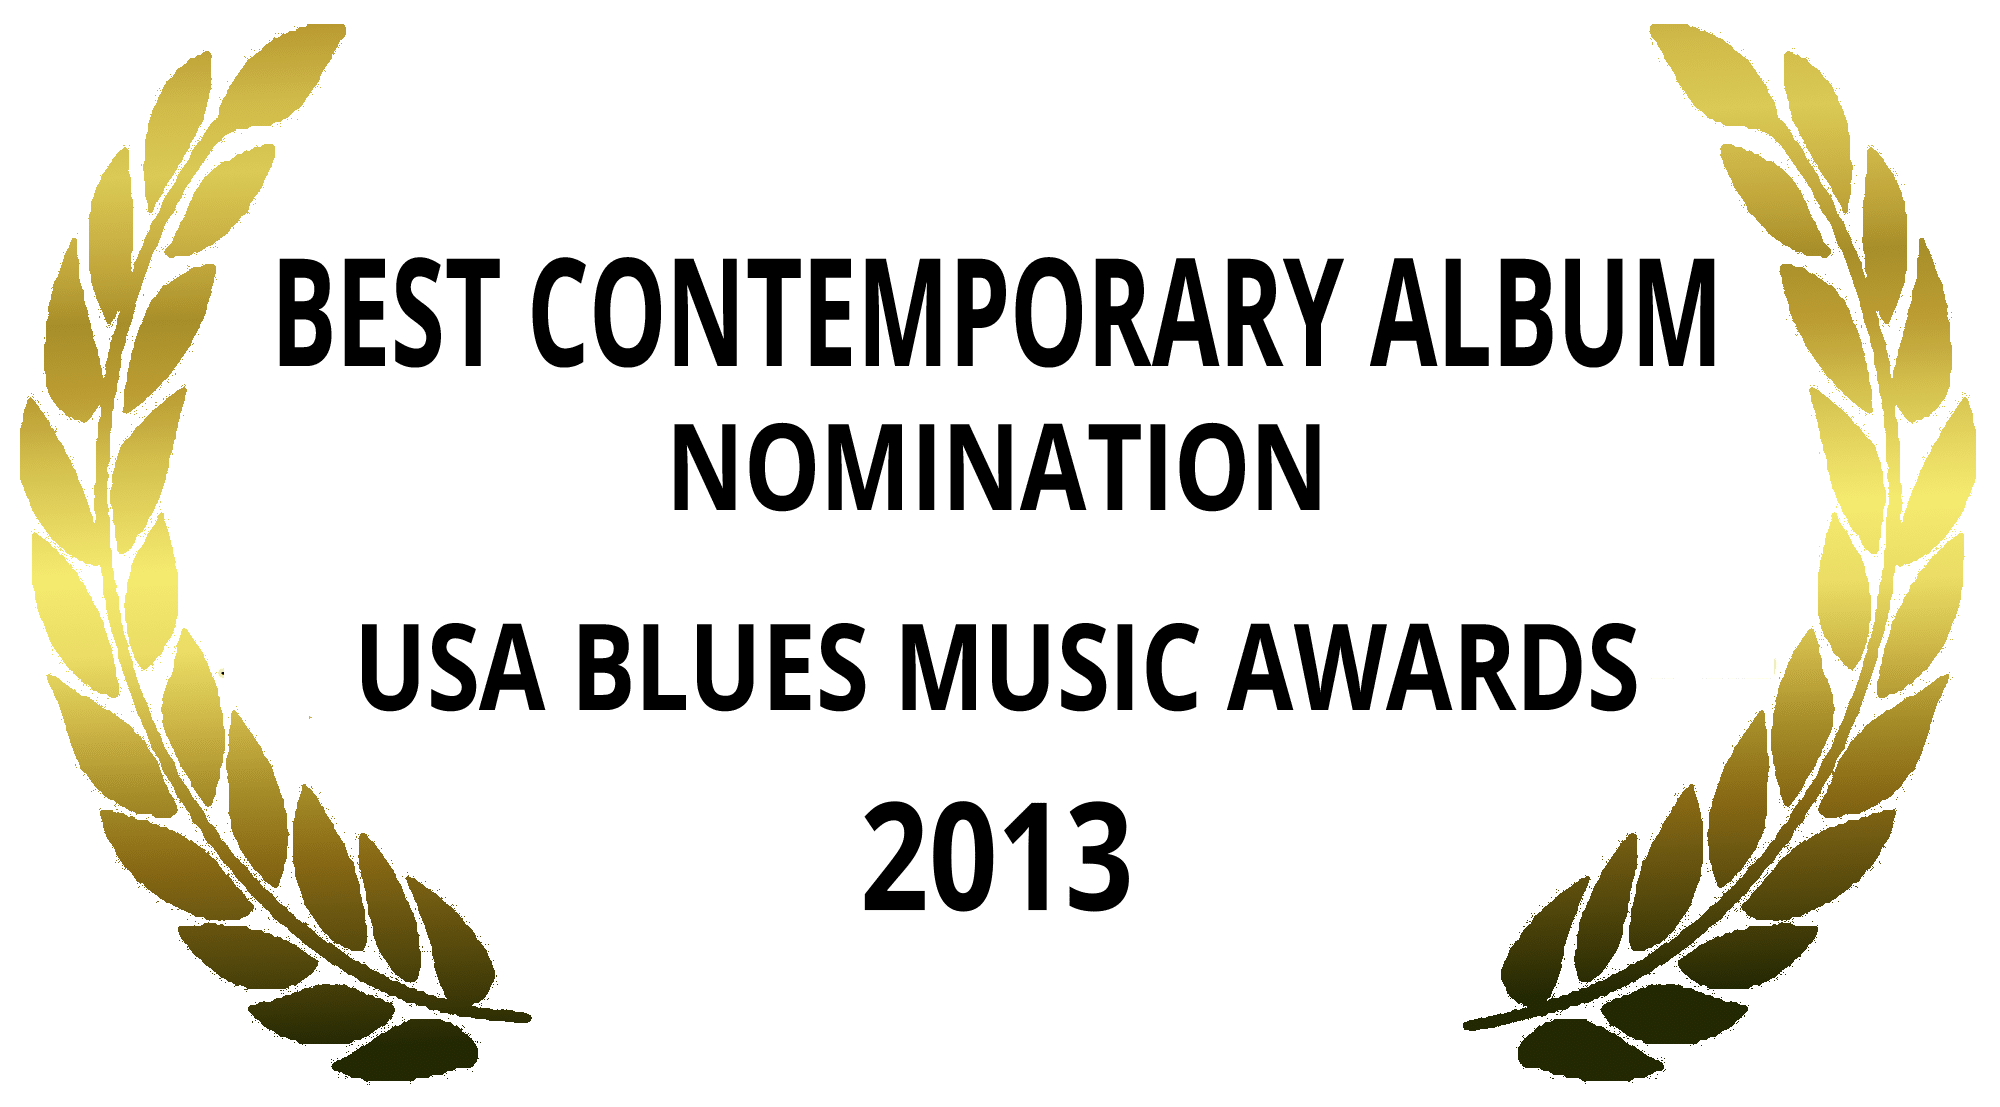 Best Contemporary Album Nominee 2013